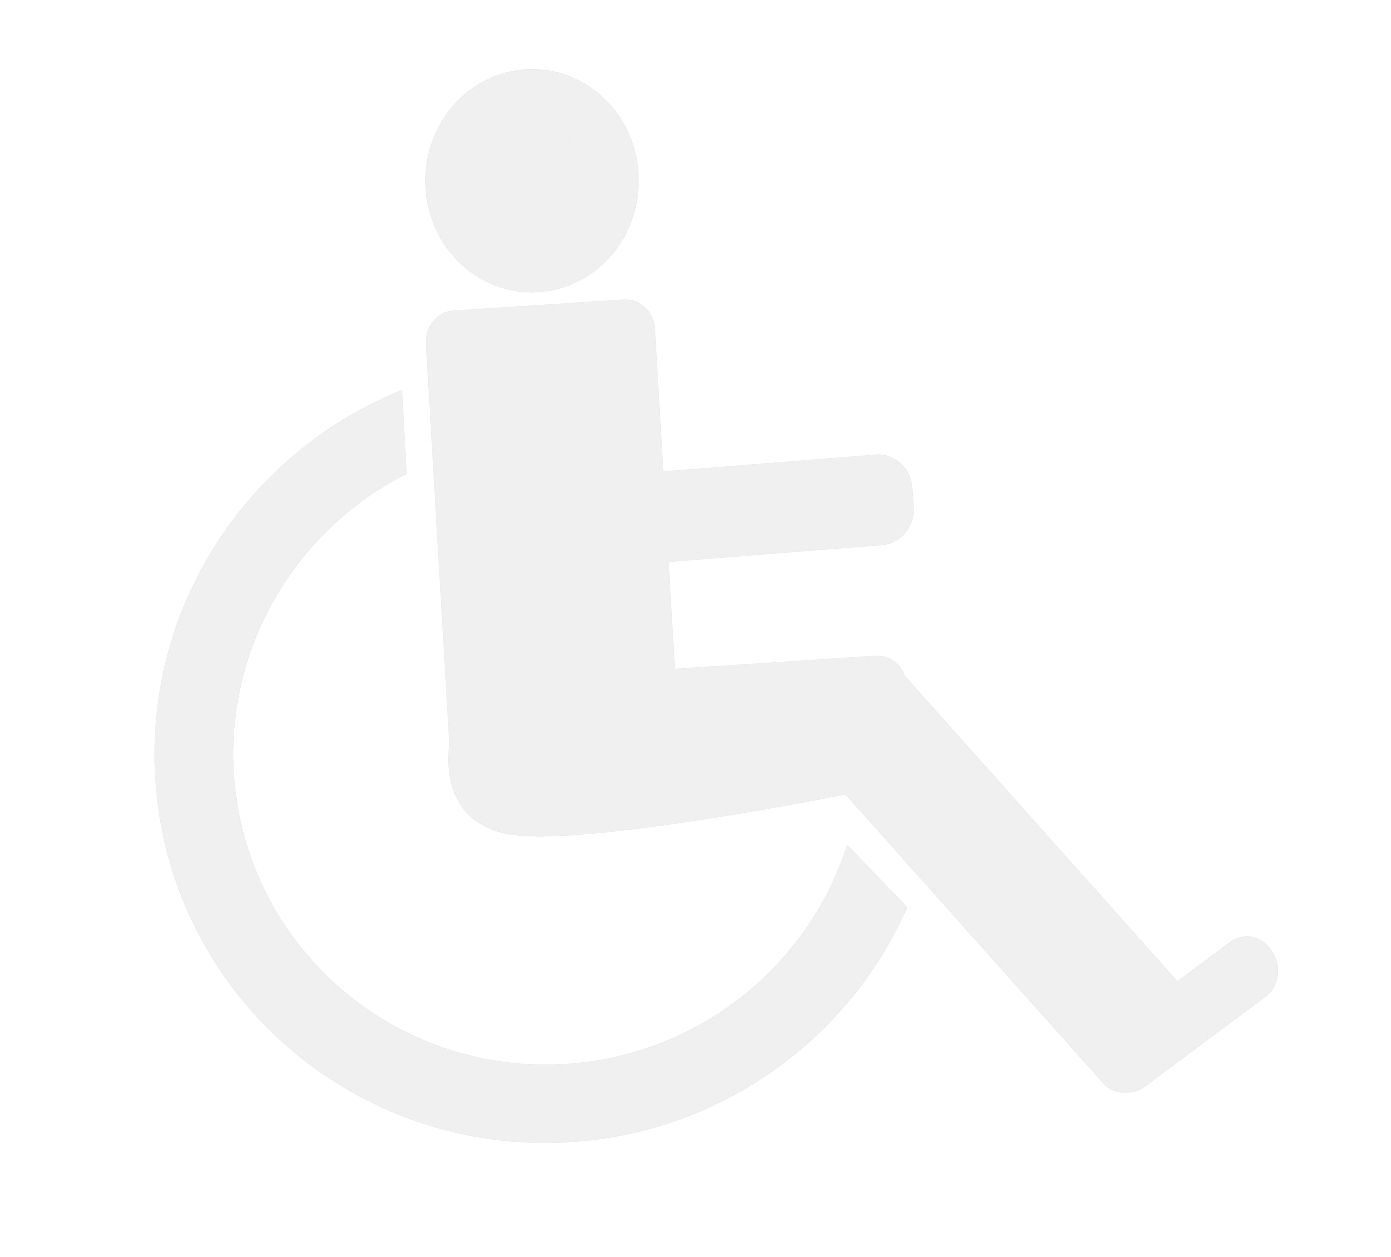 Two-dimensional icon of person in wheelchair